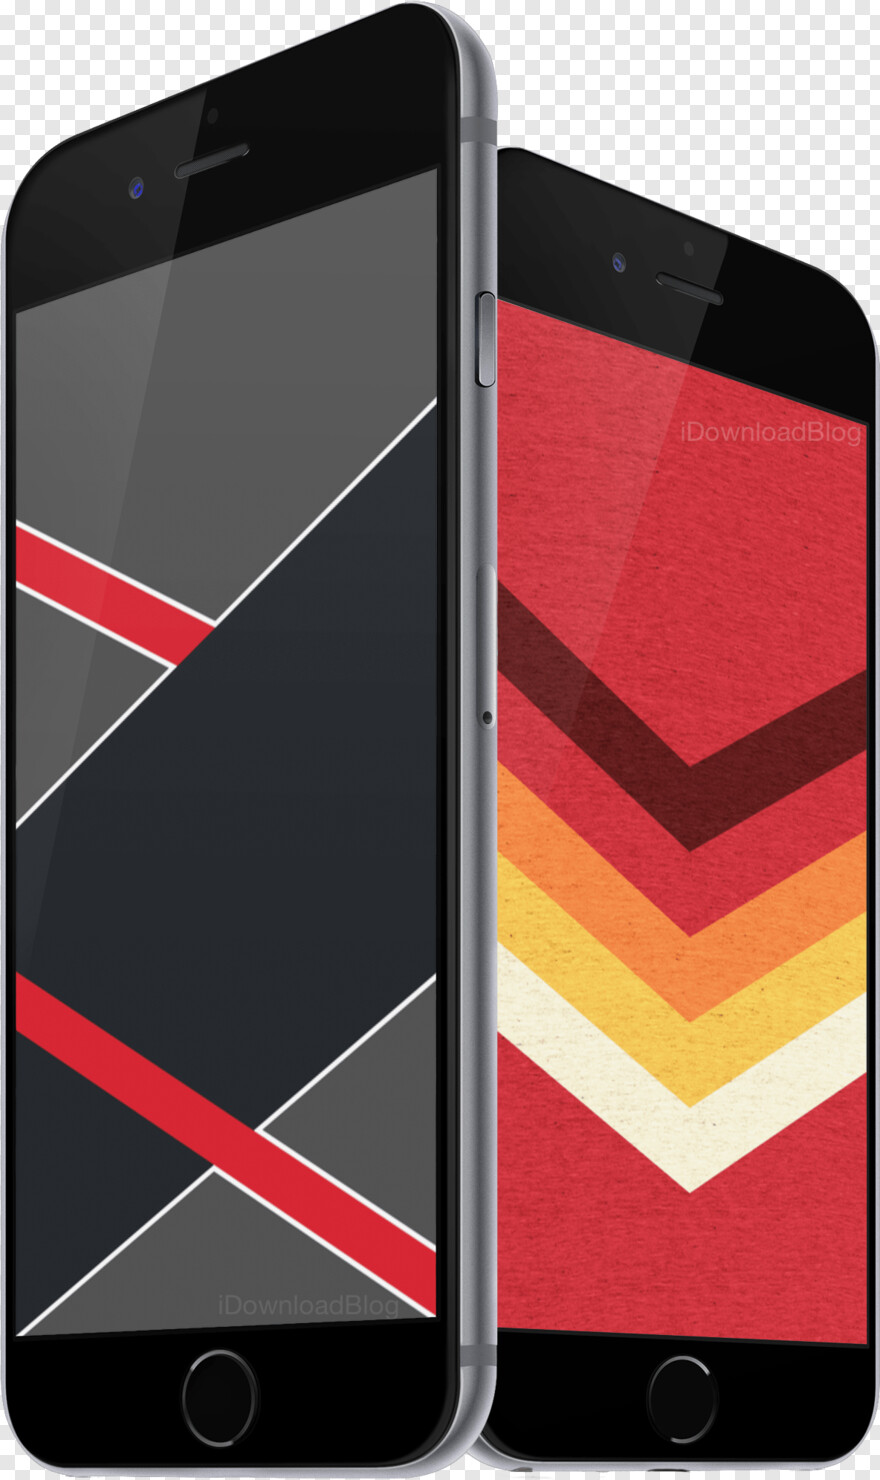 Iphone 10 2 Wallpaper Mkbhd, Transparent Png - Mobile Phone Wallpaper Png - HD Wallpaper